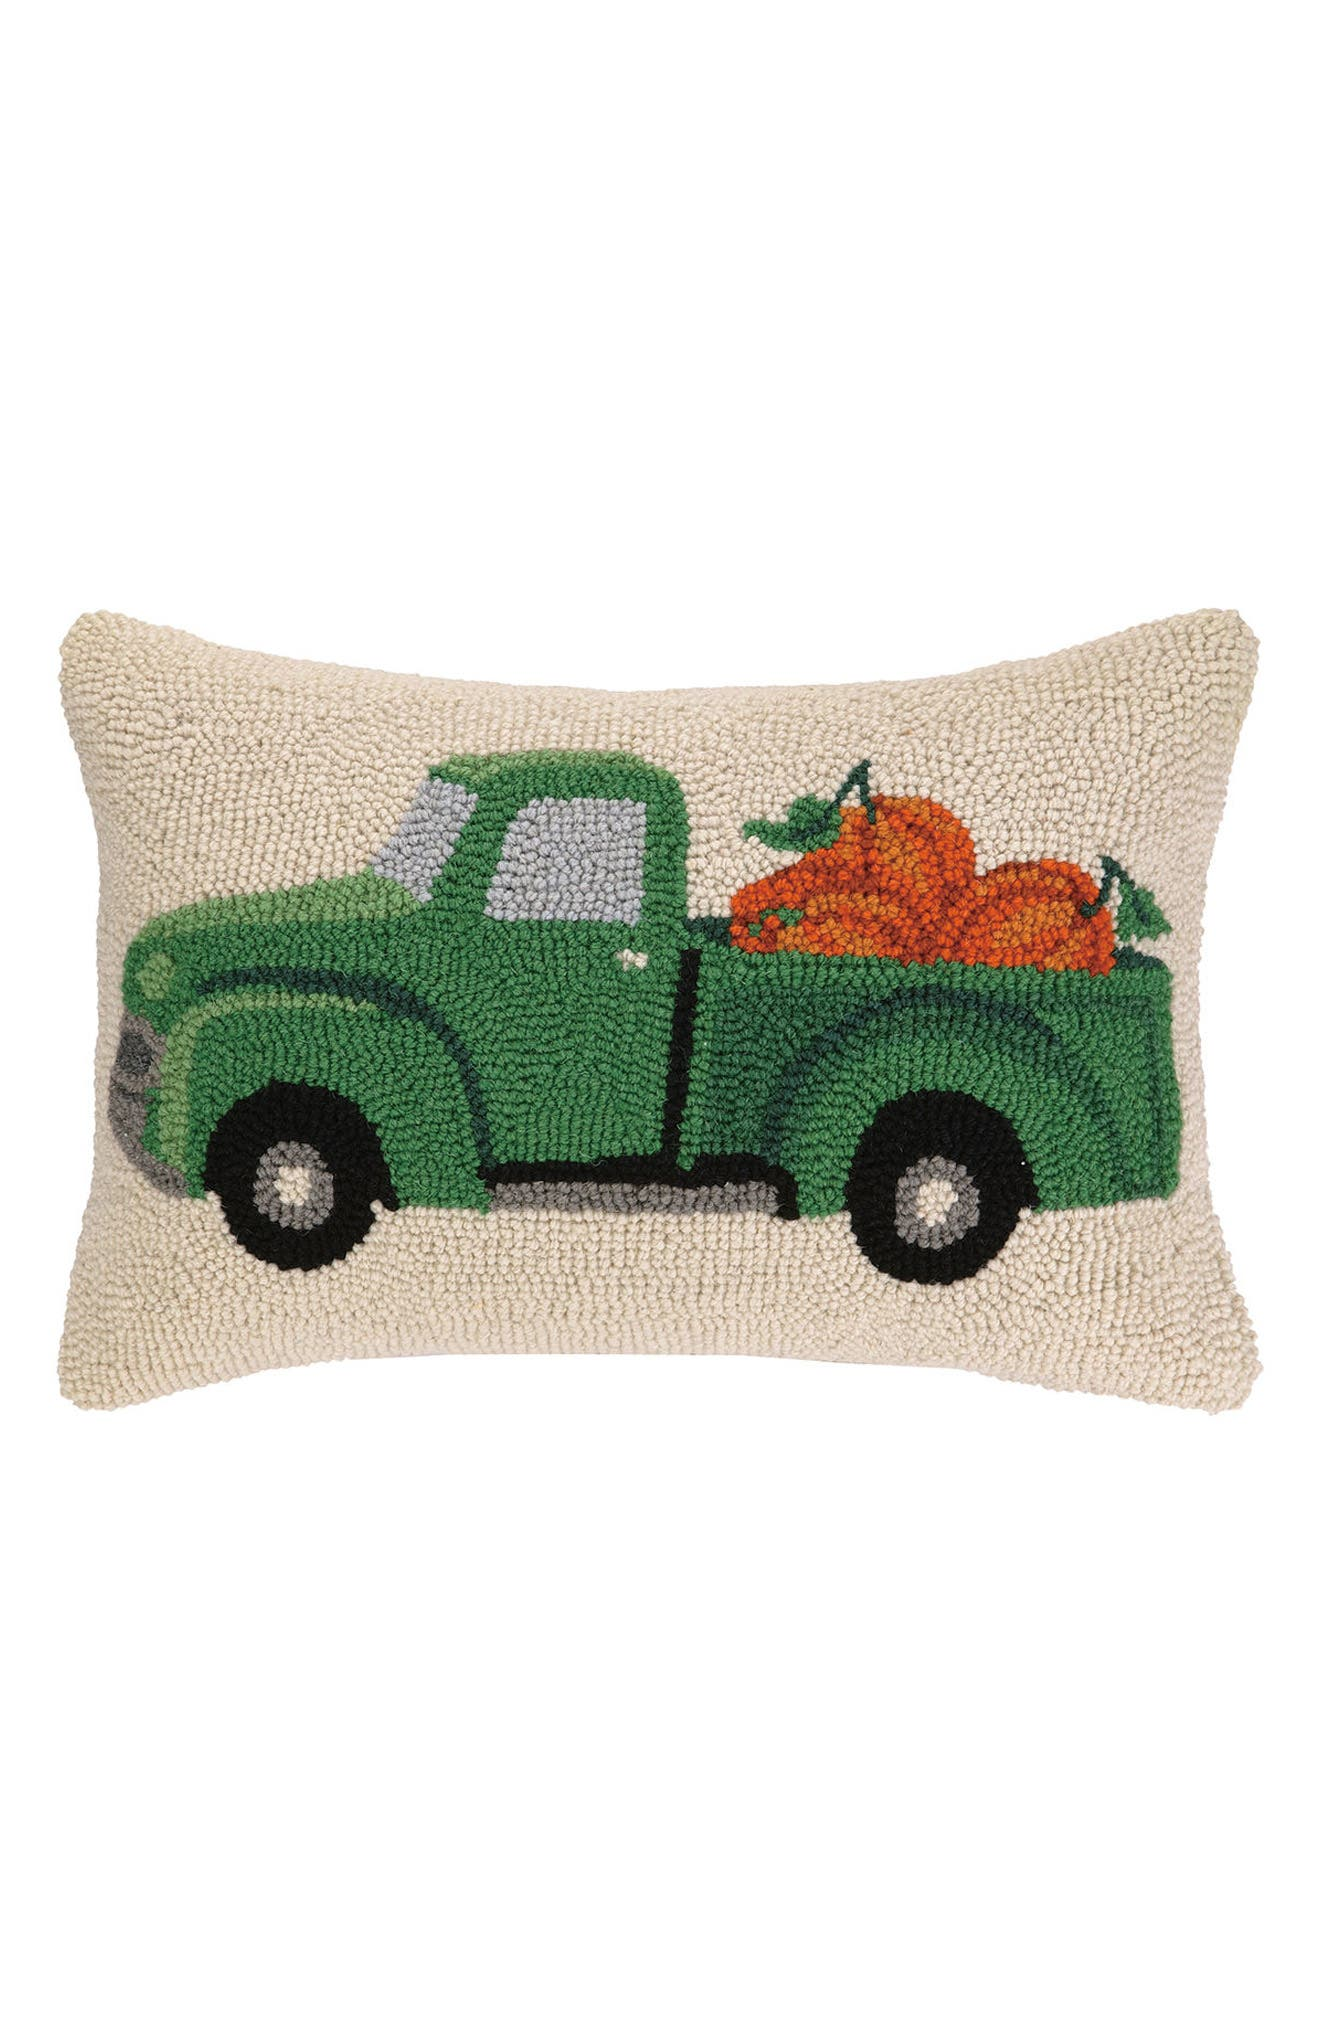 Fall Truck Accent Pillow,                             Main thumbnail 1, color,                             Green